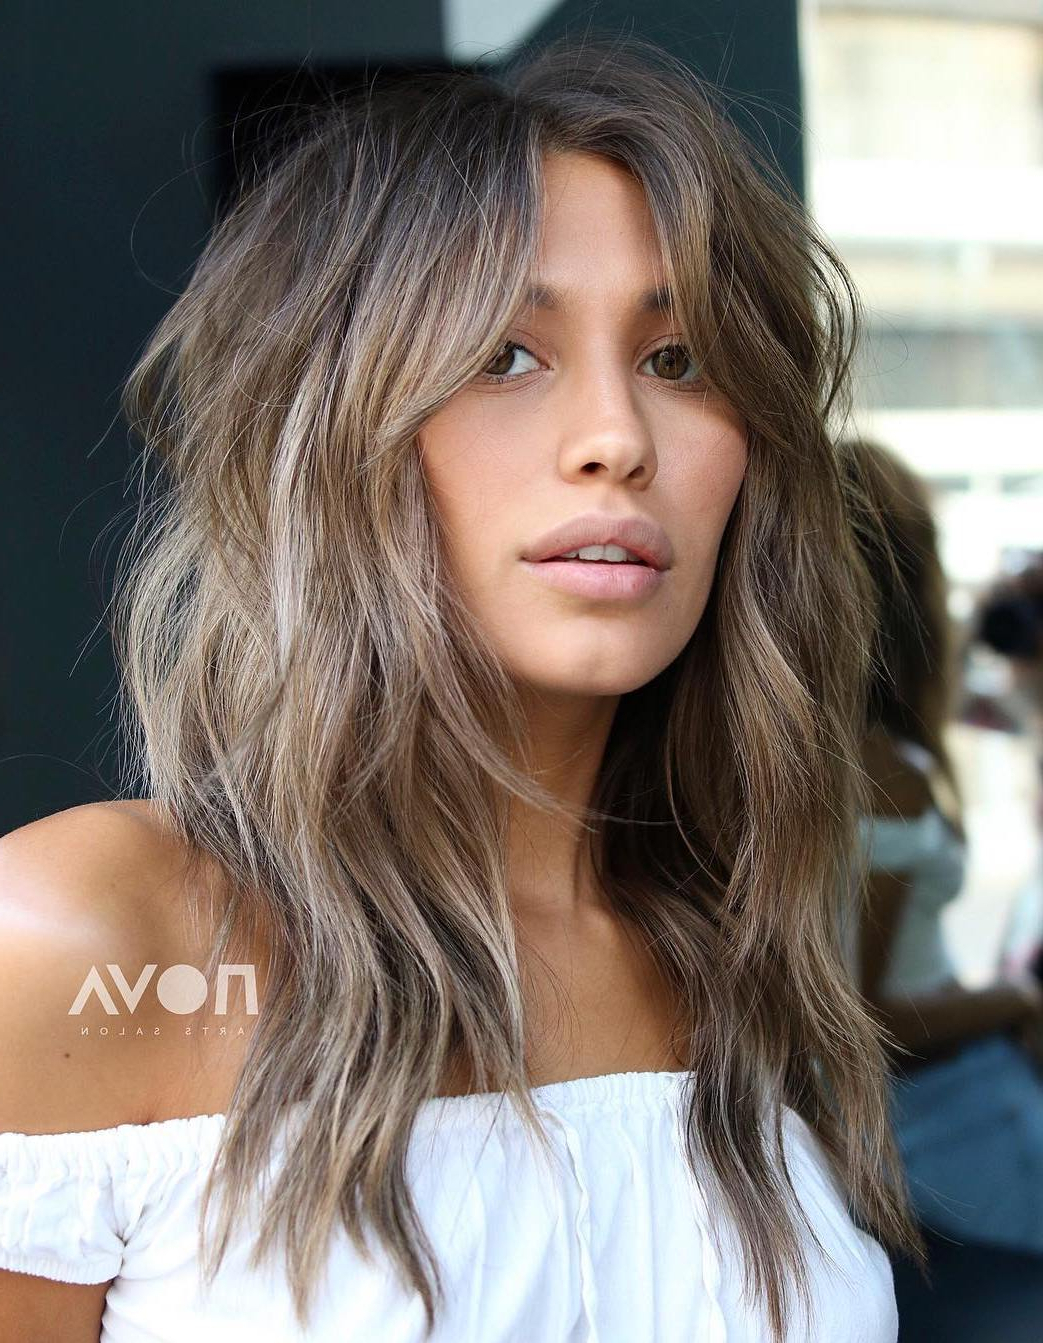 40 Modern Shag Haircuts For Women To Make A Splash Pertaining To Trendy Blonde Shag Haircuts With Emphasized Layers (View 3 of 20)